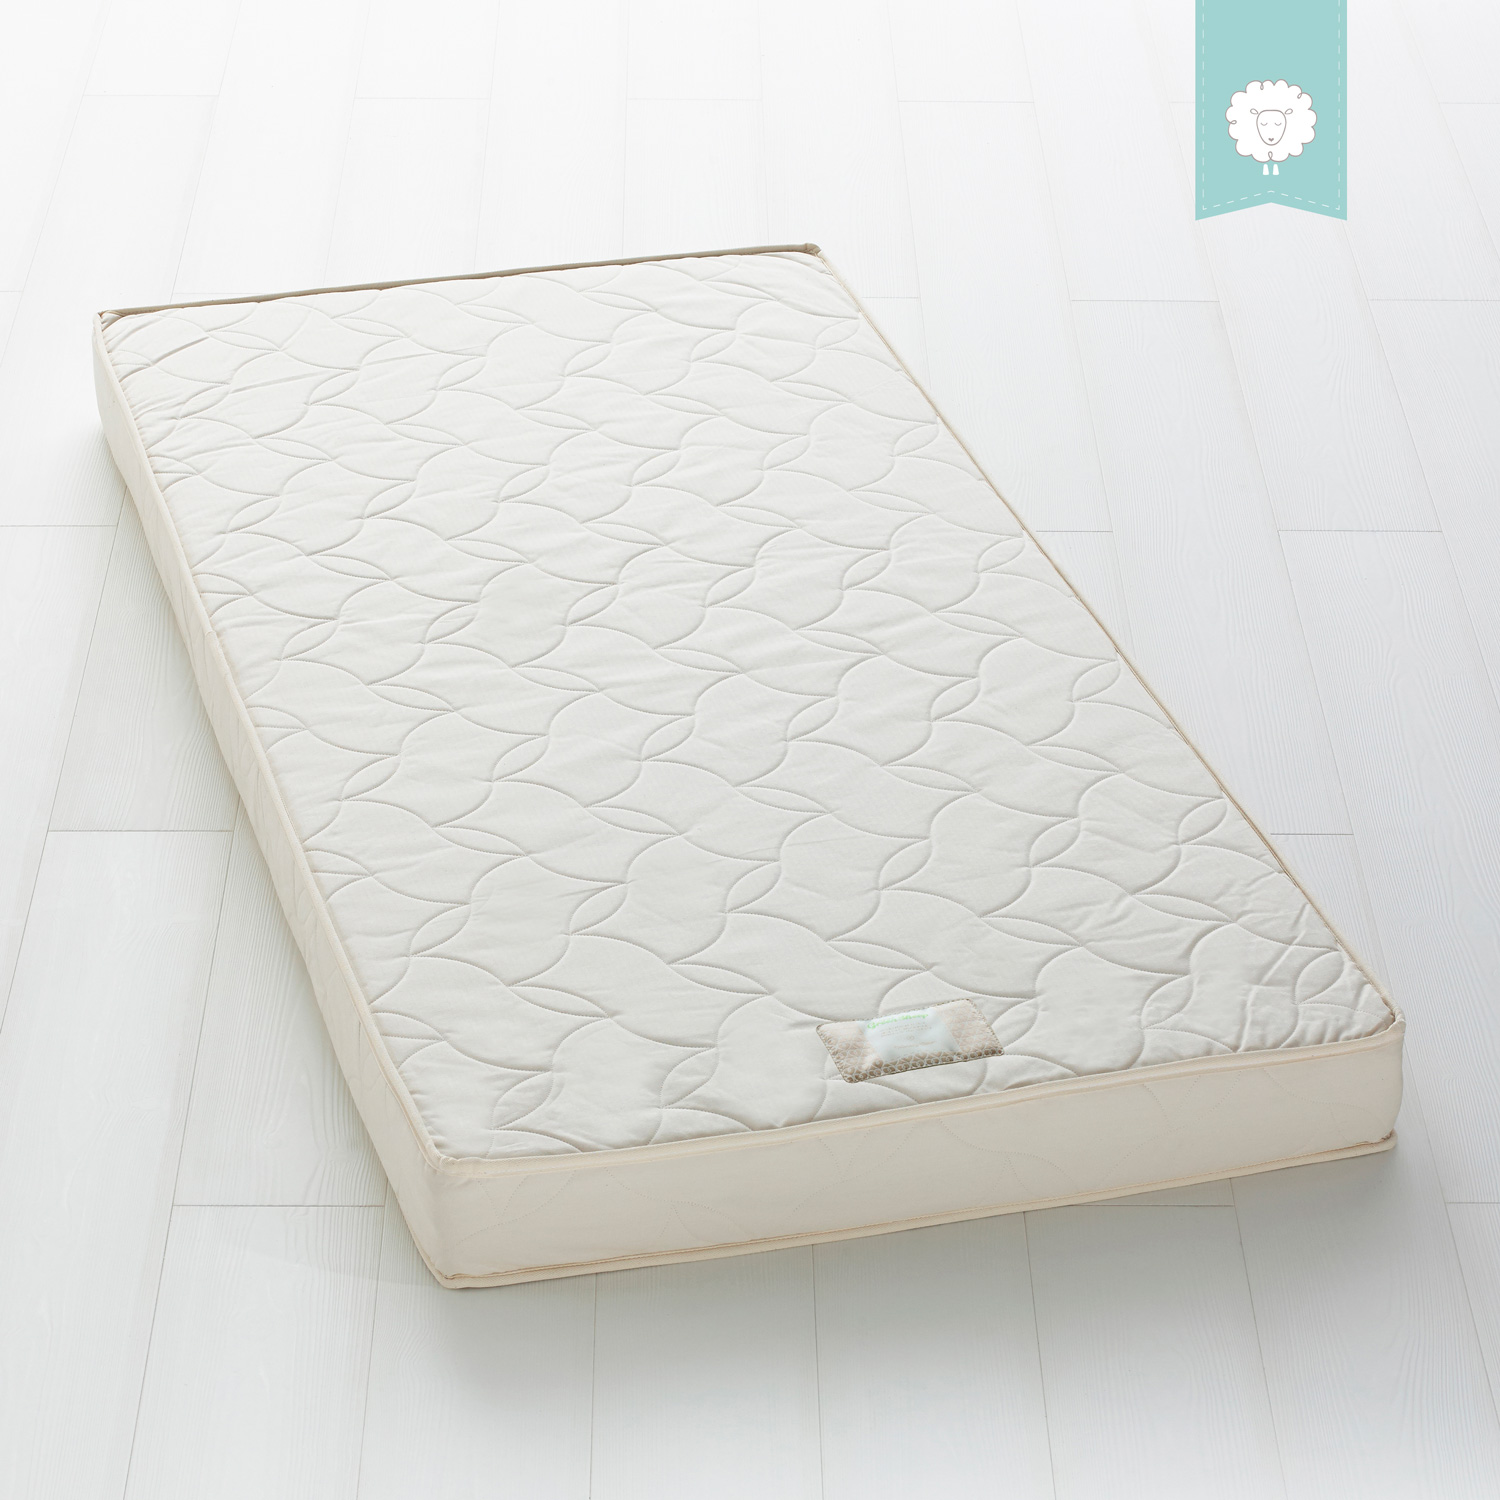 The Little Green Sheep Natural 90x190 Junior Mattress